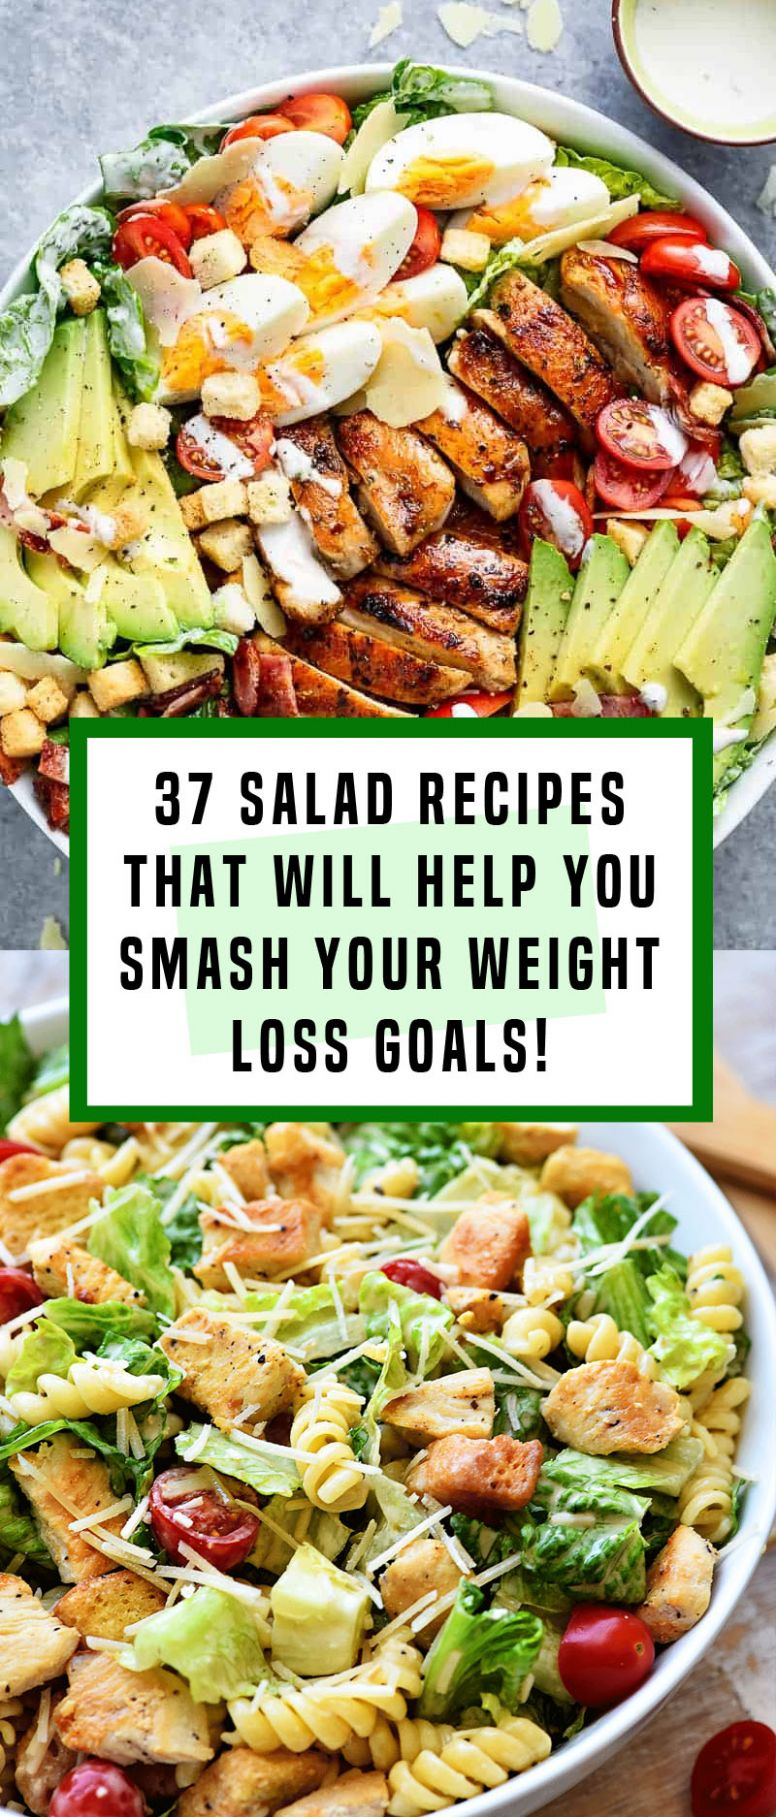 10 Salad Recipes That Will Help You Smash Your Weight Loss Goals ..